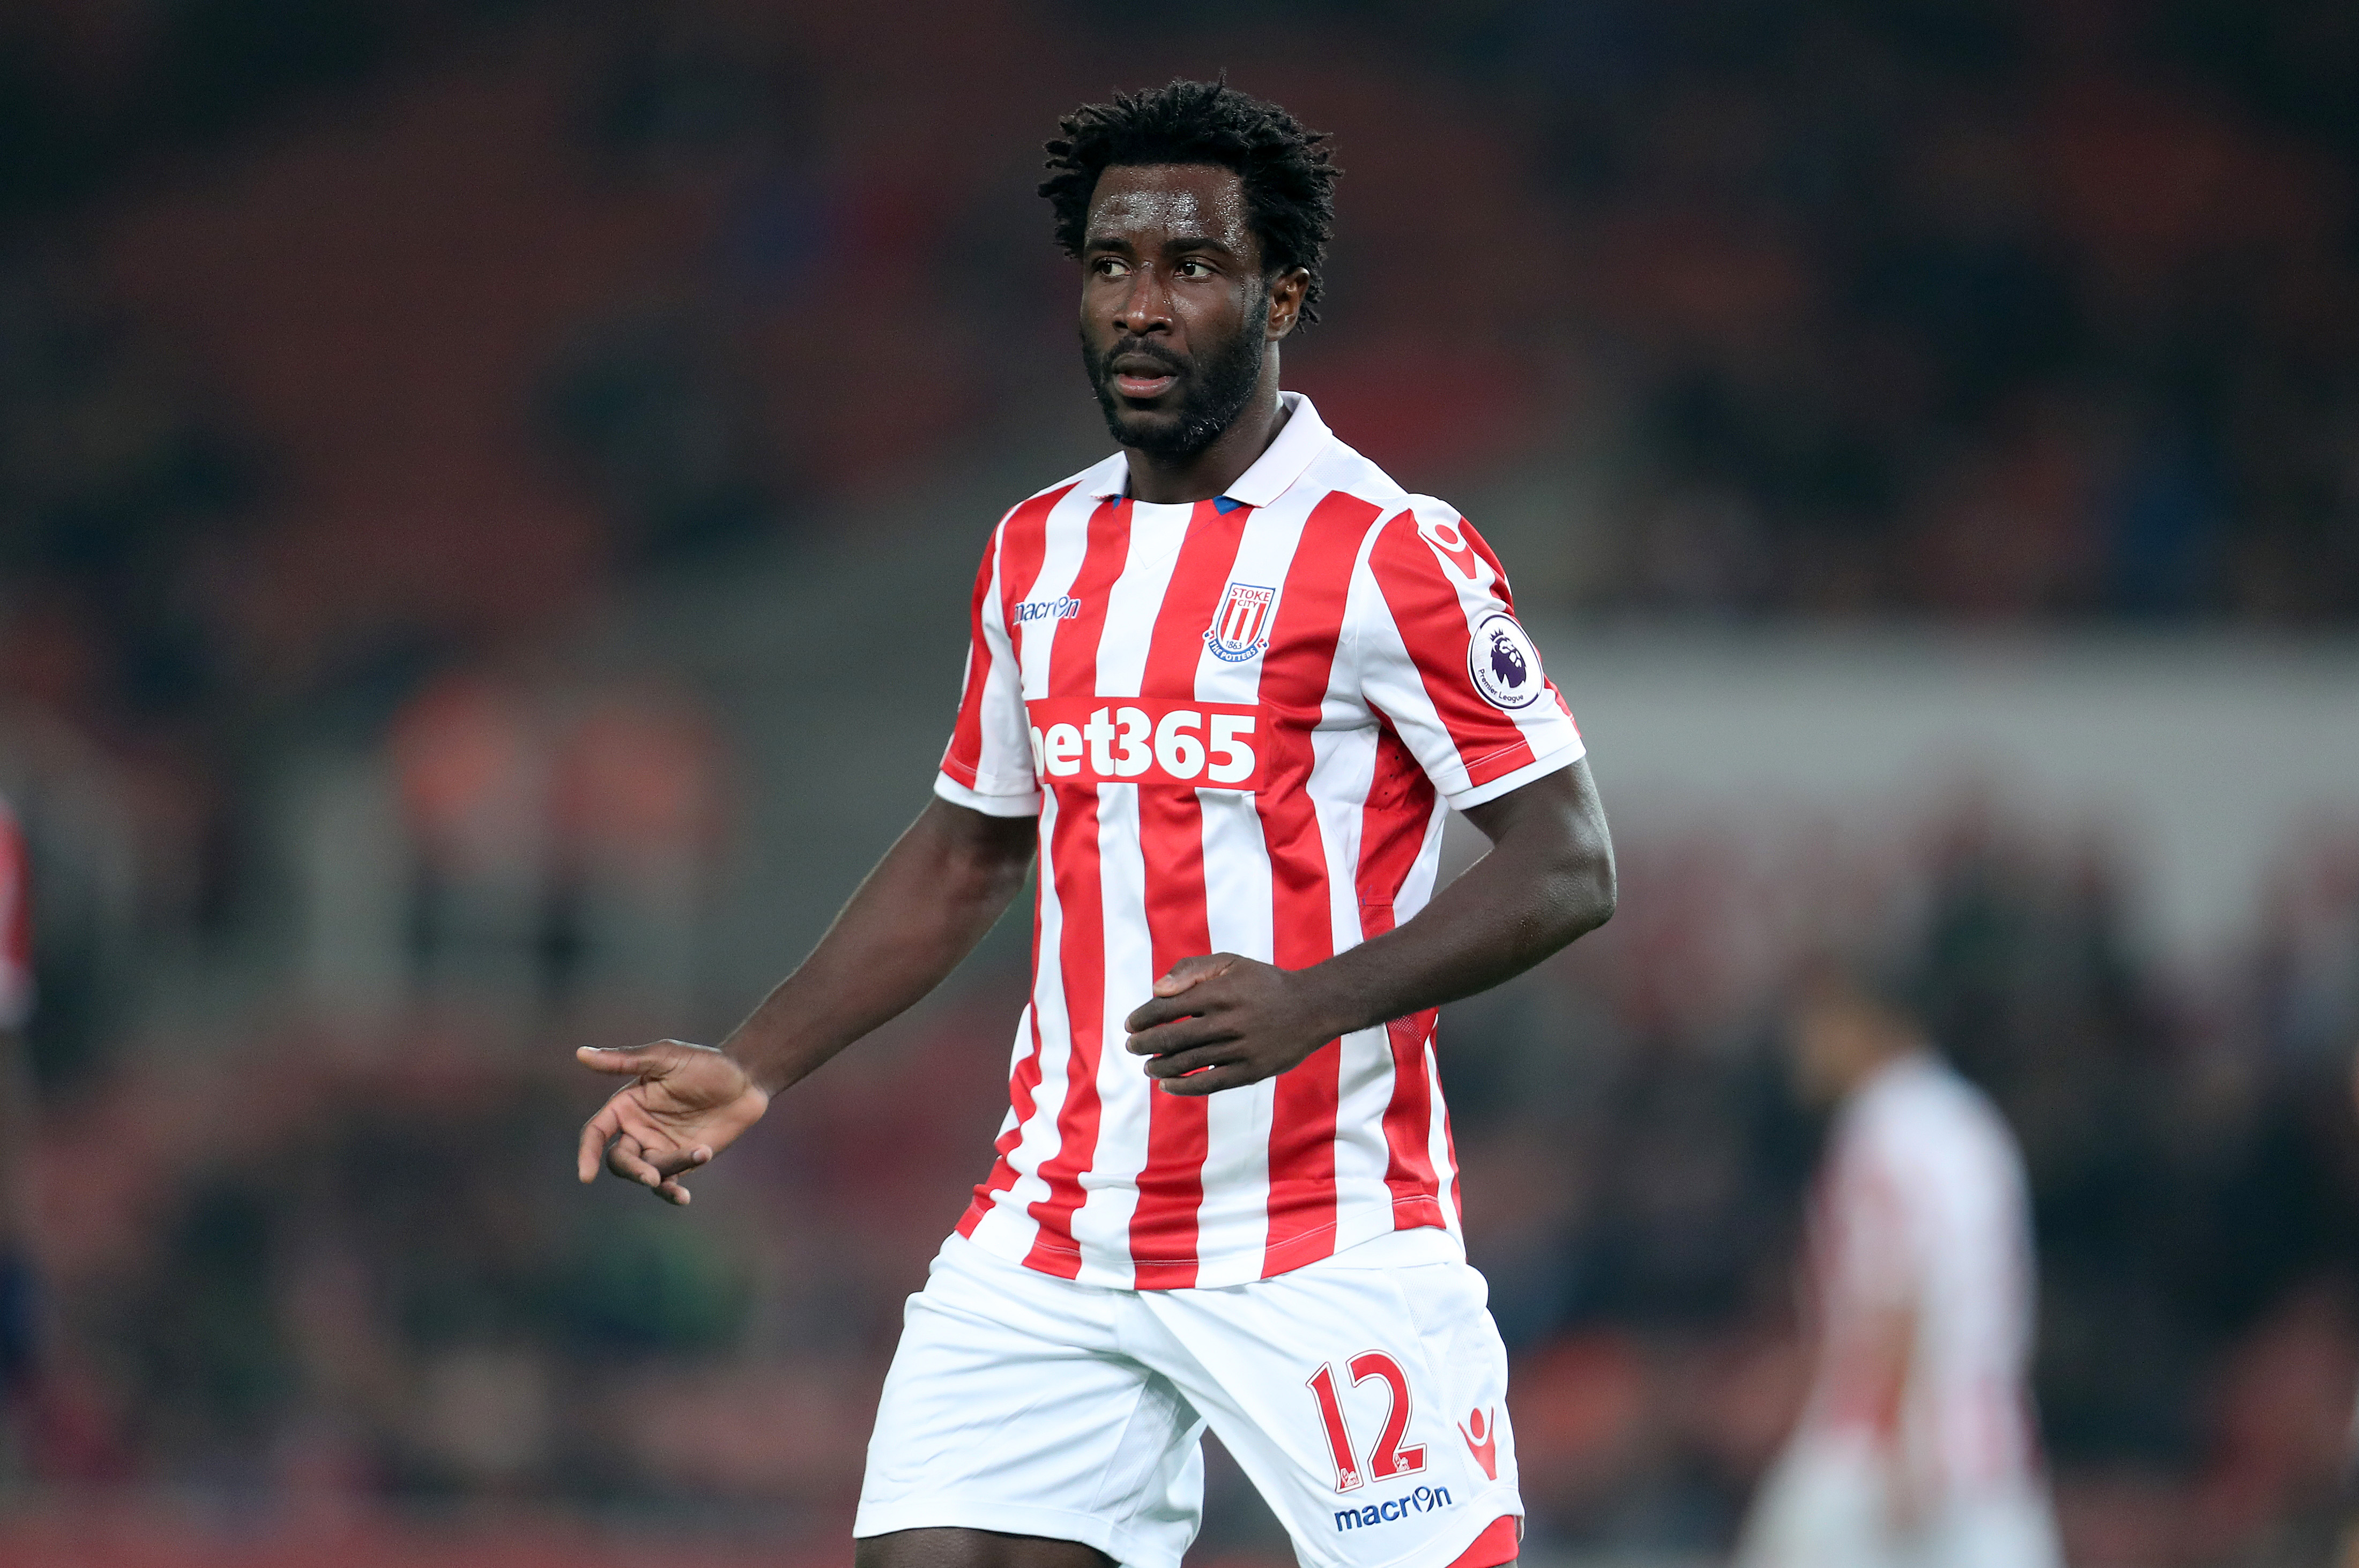 Stoke City striker Wilfried Bony 'looks like he's towing a caravan' against West Brom, claims Robbie Savage